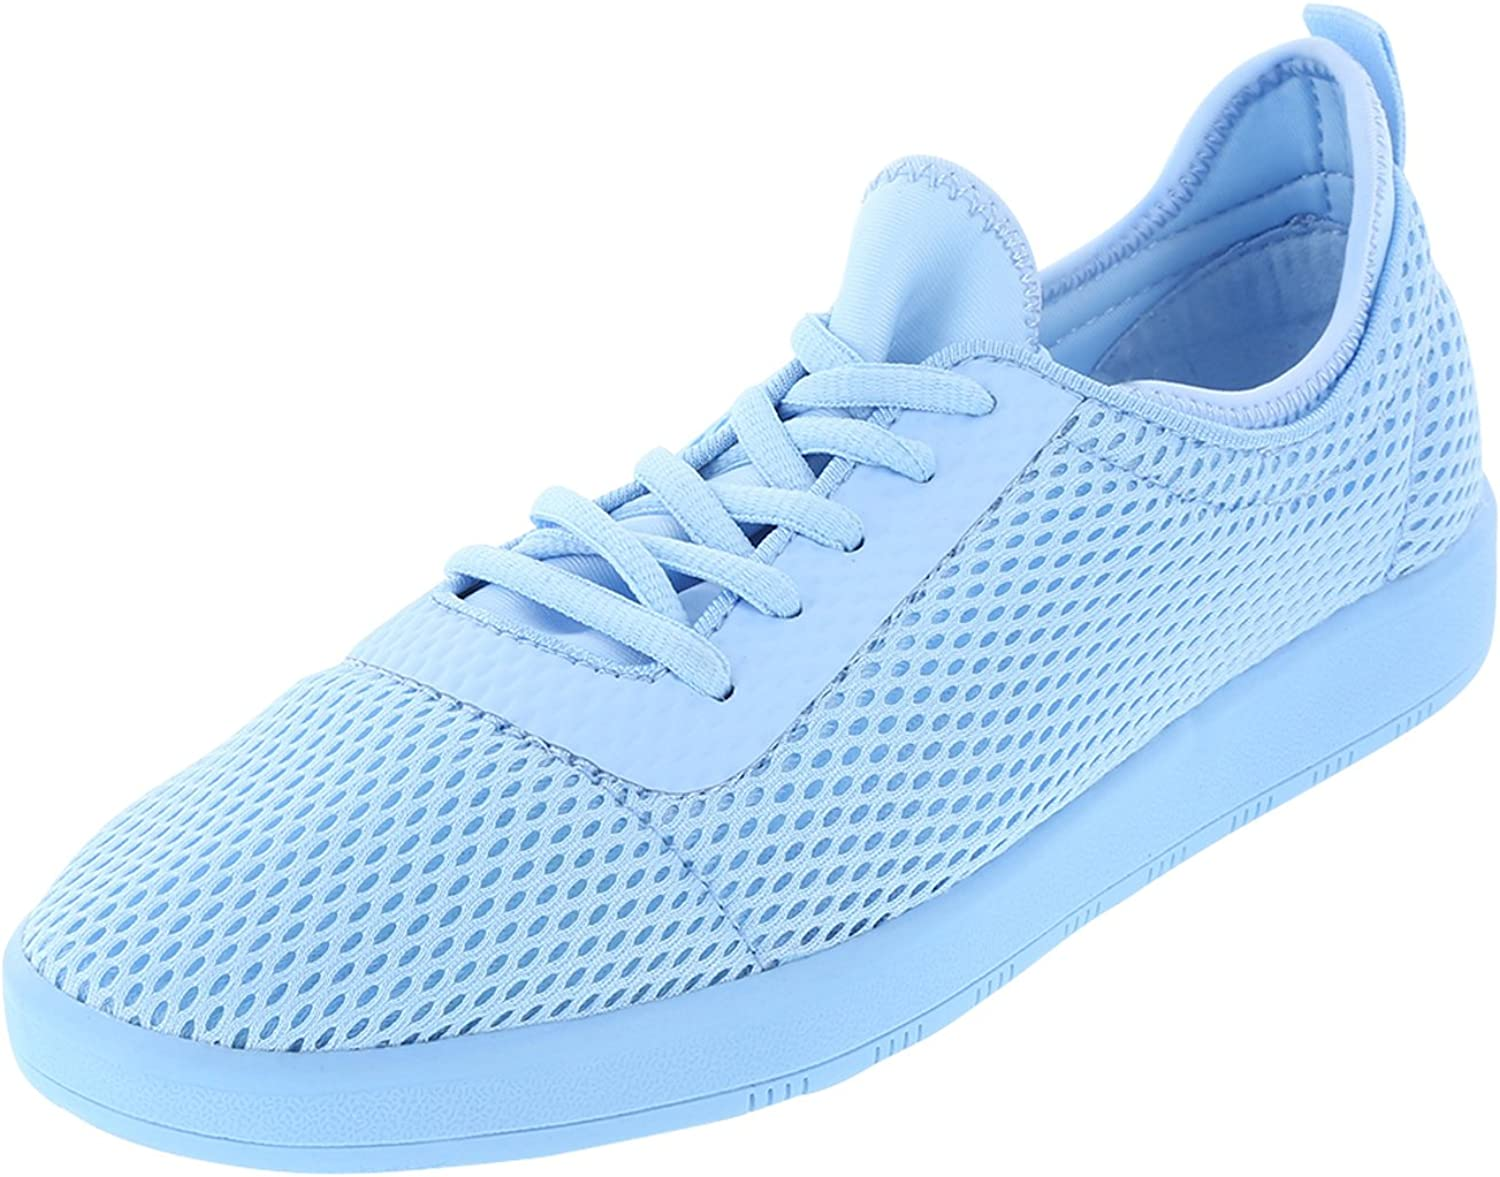 Brash Women's Ashton Lace-Up Sneaker